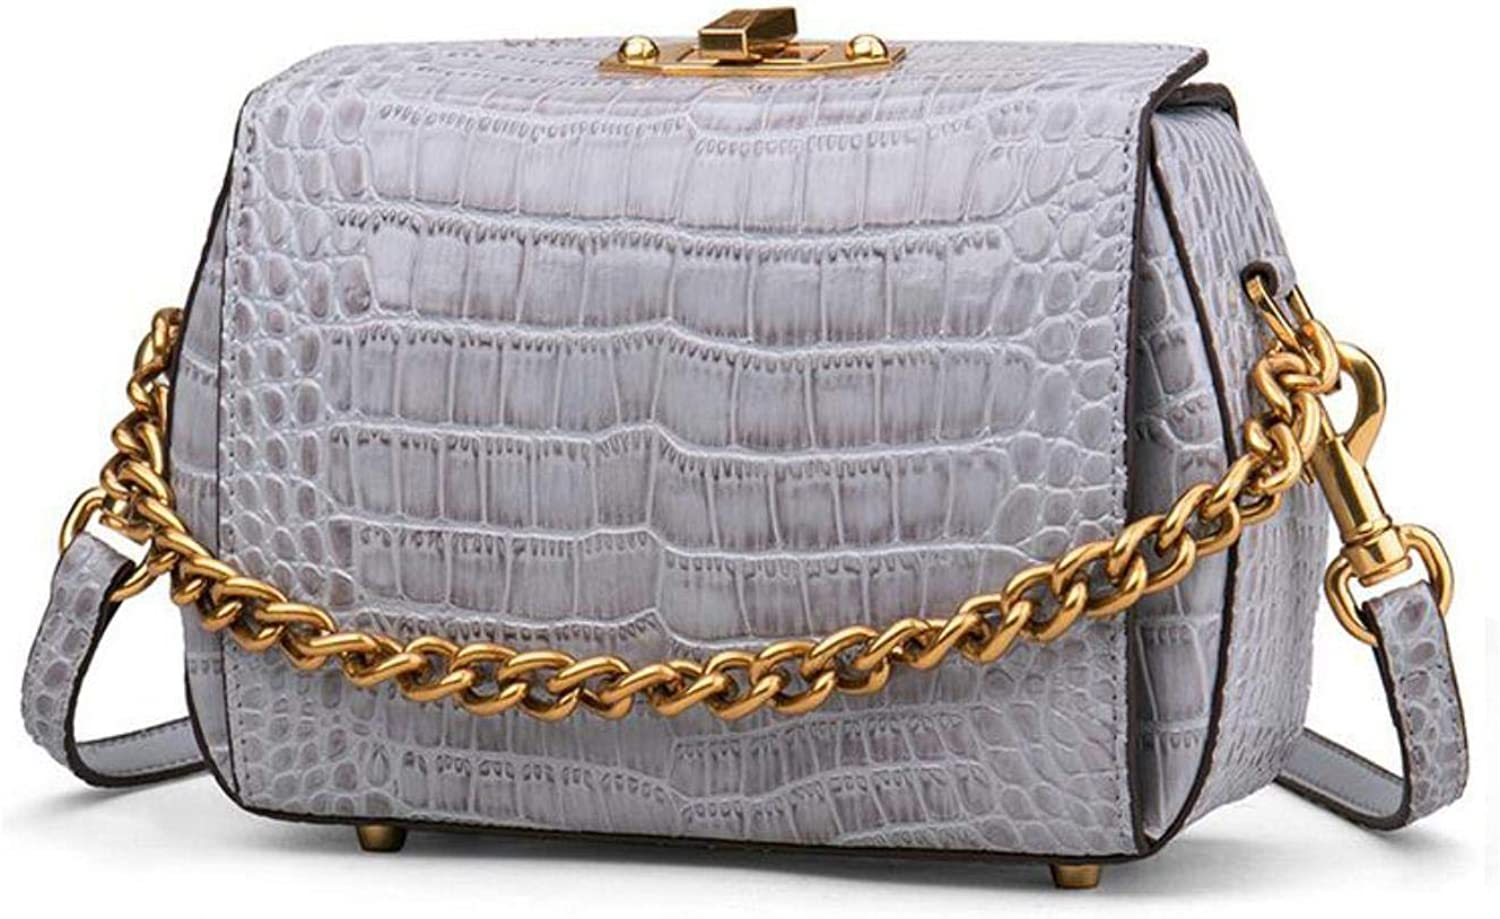 Genuine Leather Crossbody Chain Shoulder Bags